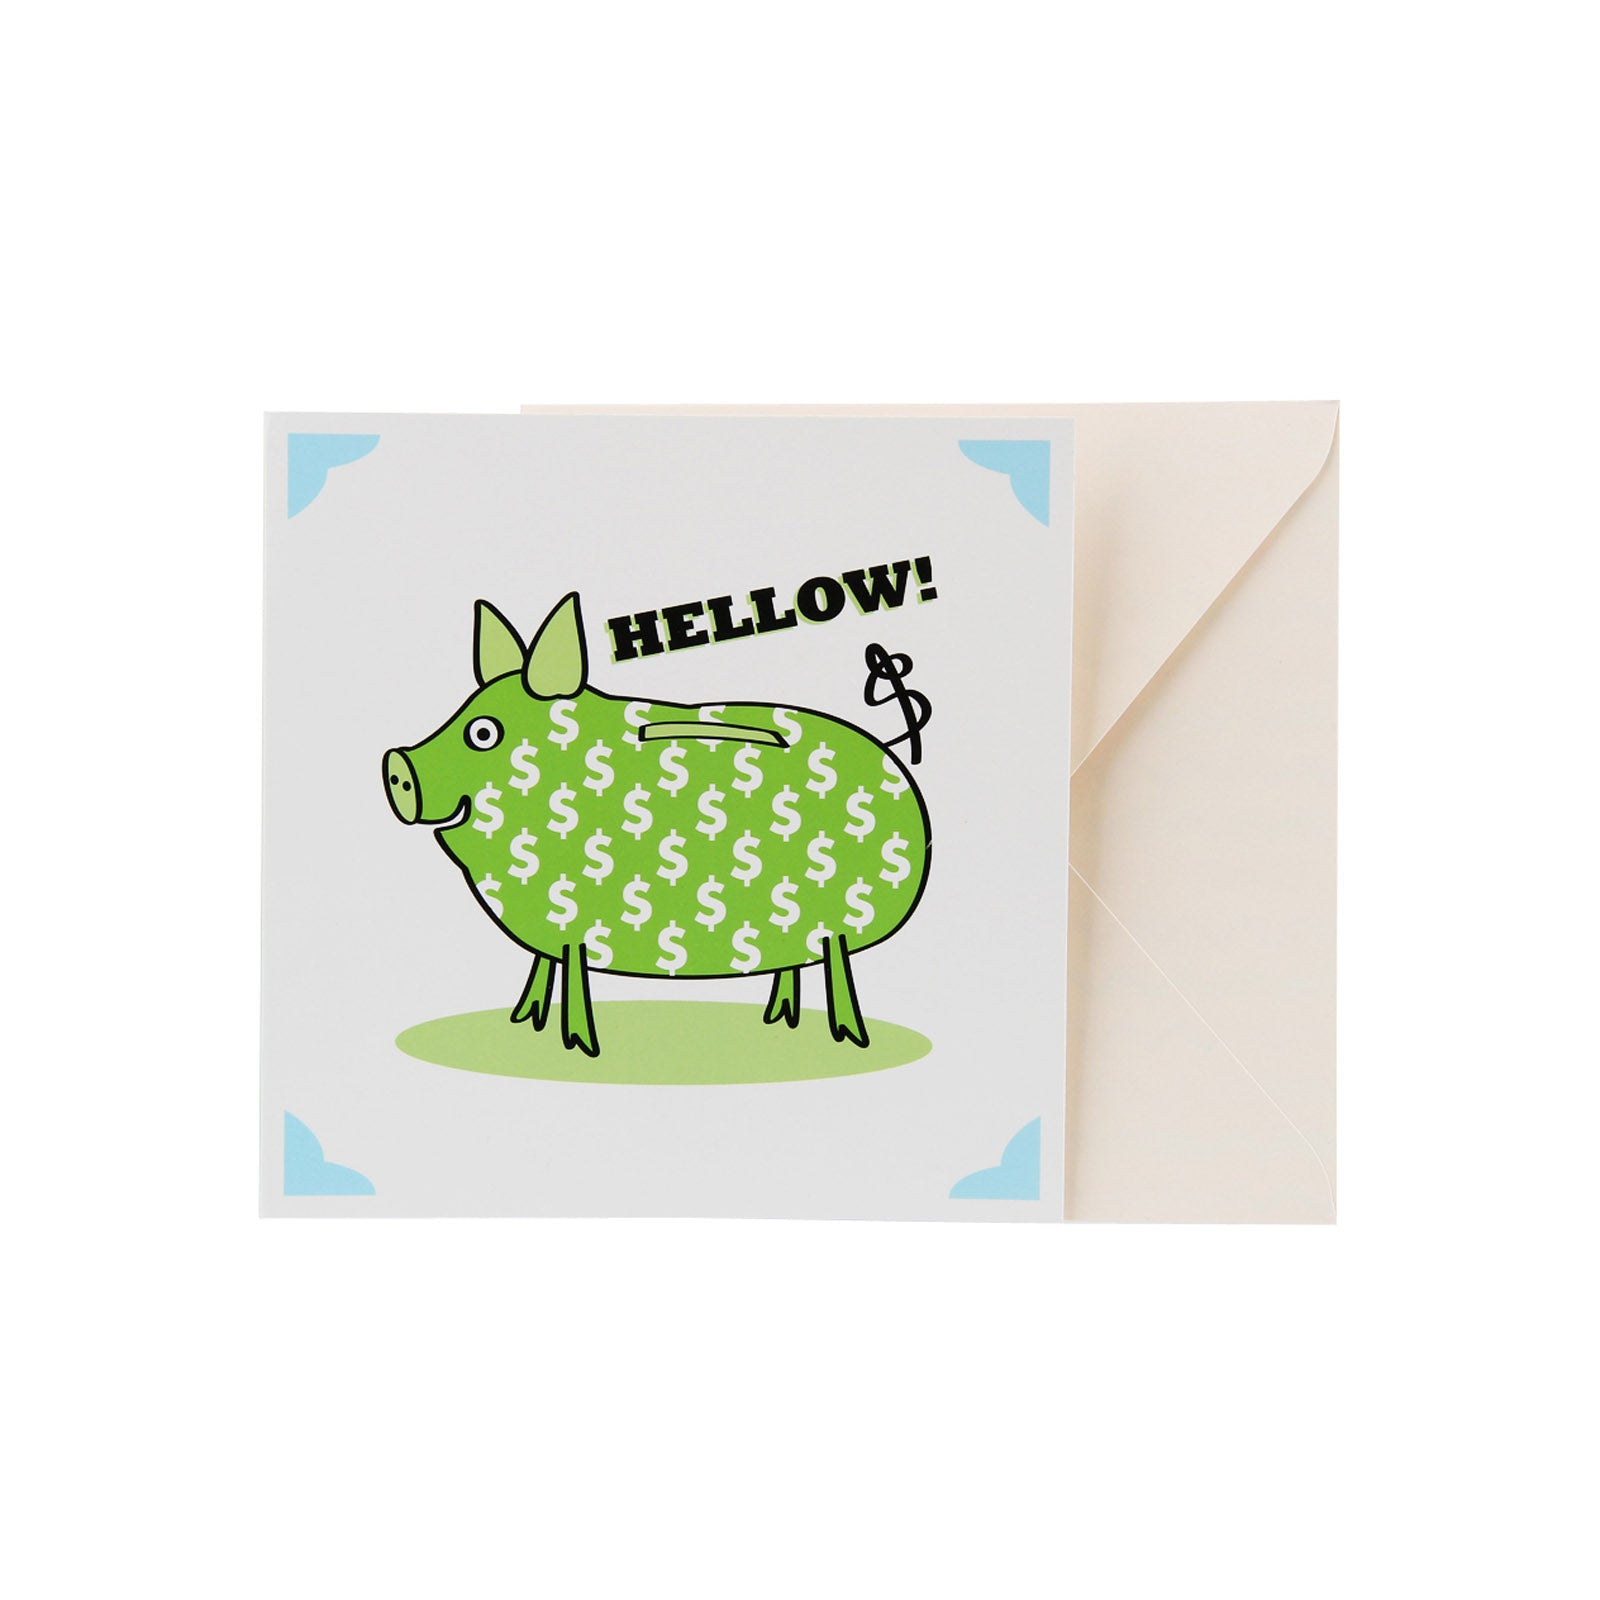 Hello Card - Hellow! - Green Money Pig